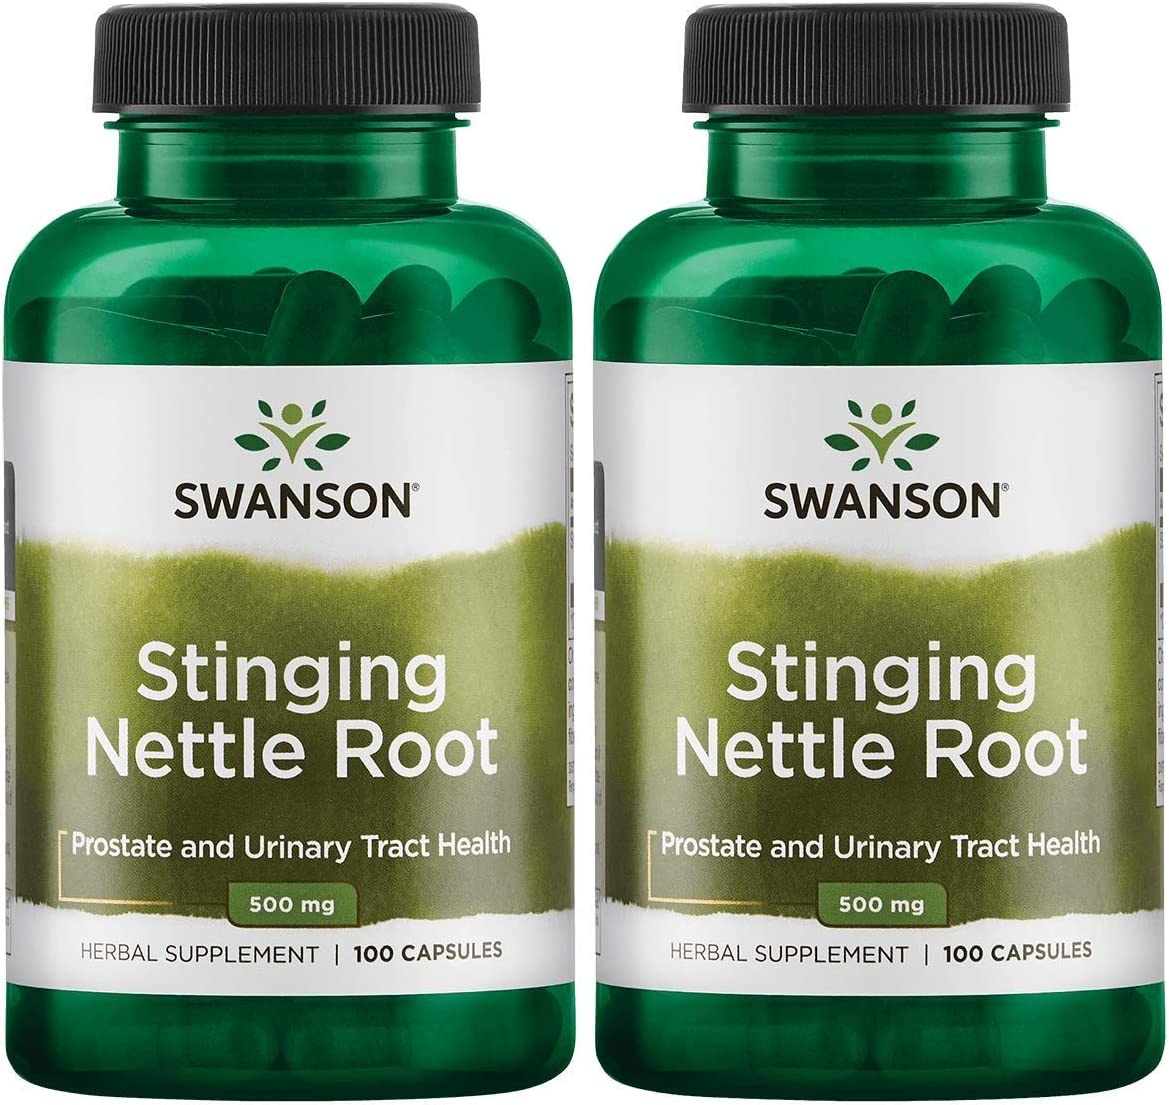 Swanson Stinging Nettle Root Urinary Tract Health Respiratory Health Prostate Support Men's Health Herbal Supplement Urtica dioica Root 500 mg 100 Capsules 2 Pack